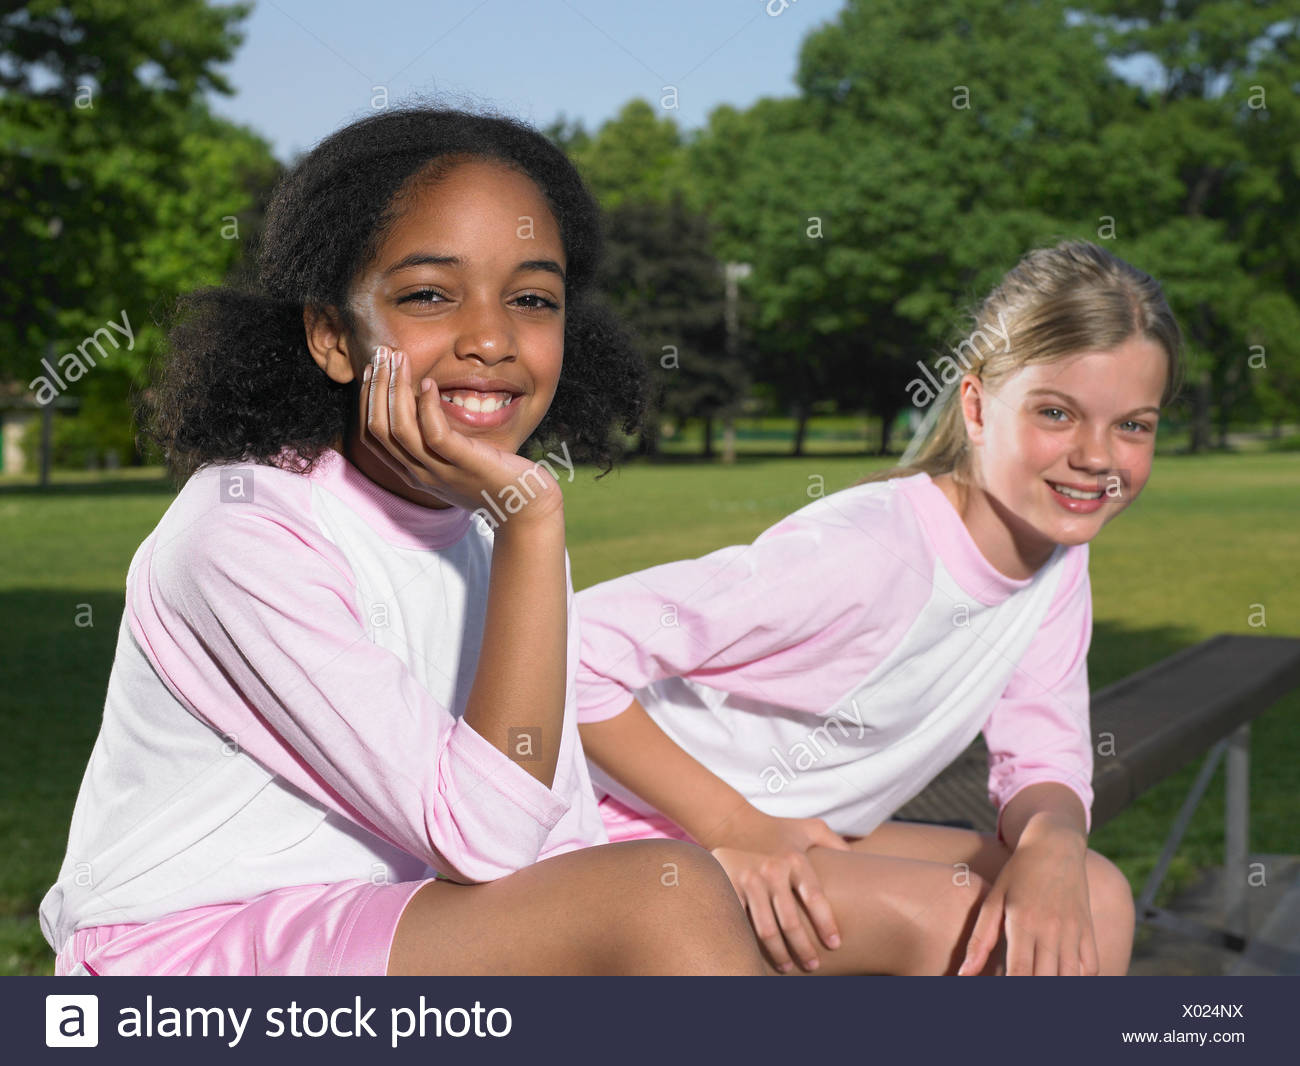 Two girls sat on a bench - Stock Image